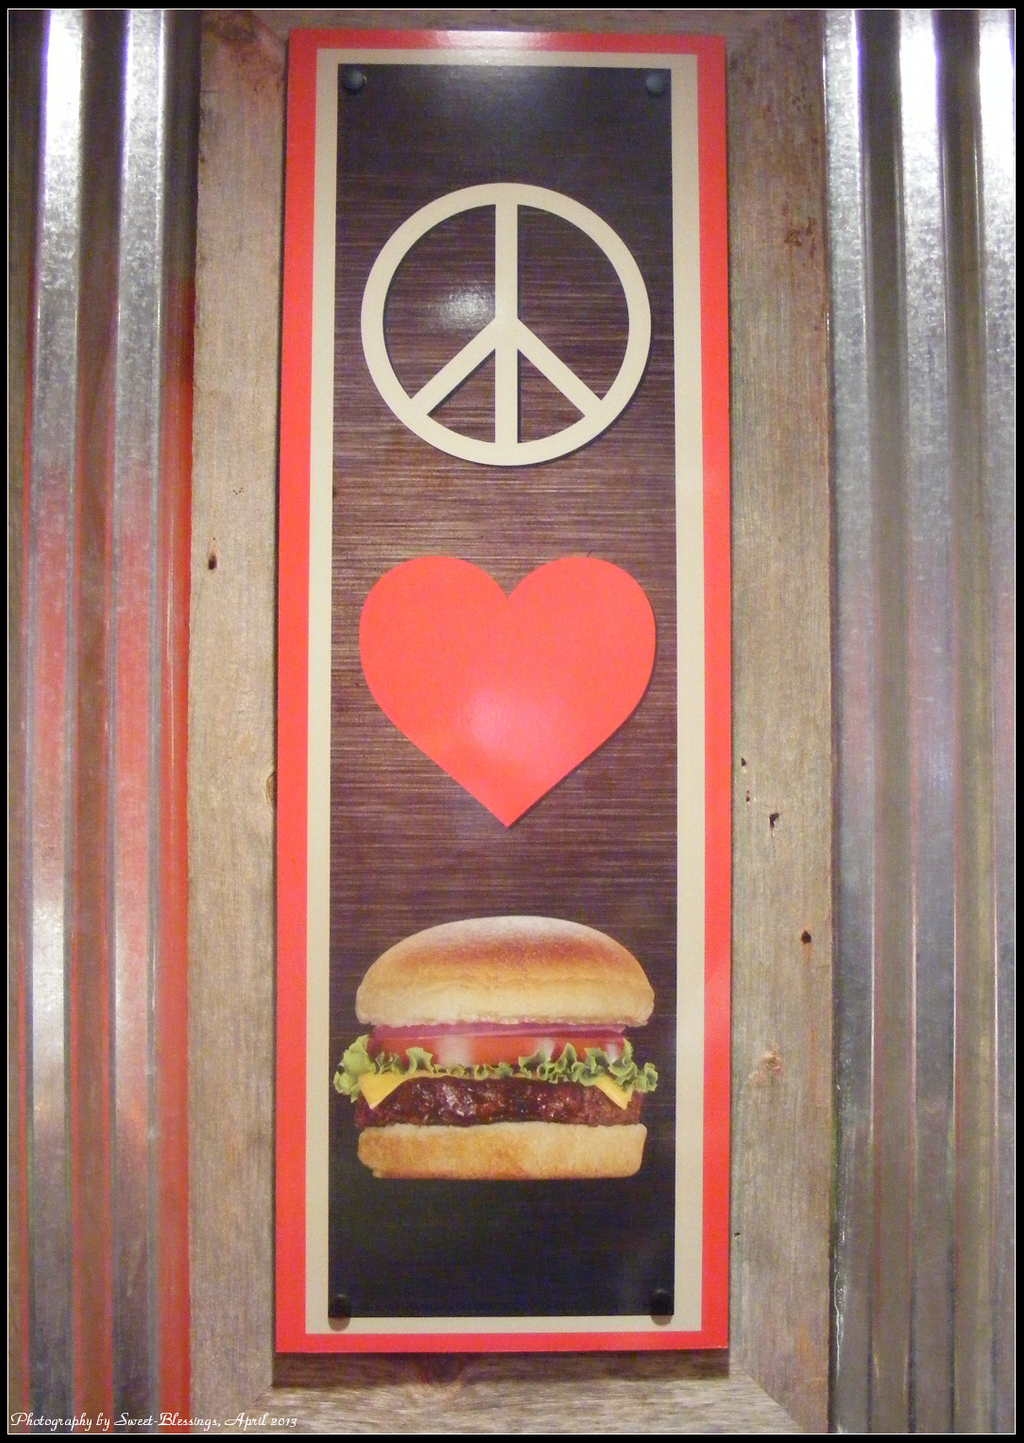 http://img00.deviantart.net/01a1/i/2013/291/2/7/peace__love__burger_by_sweet_blessings-d6qwga5.png